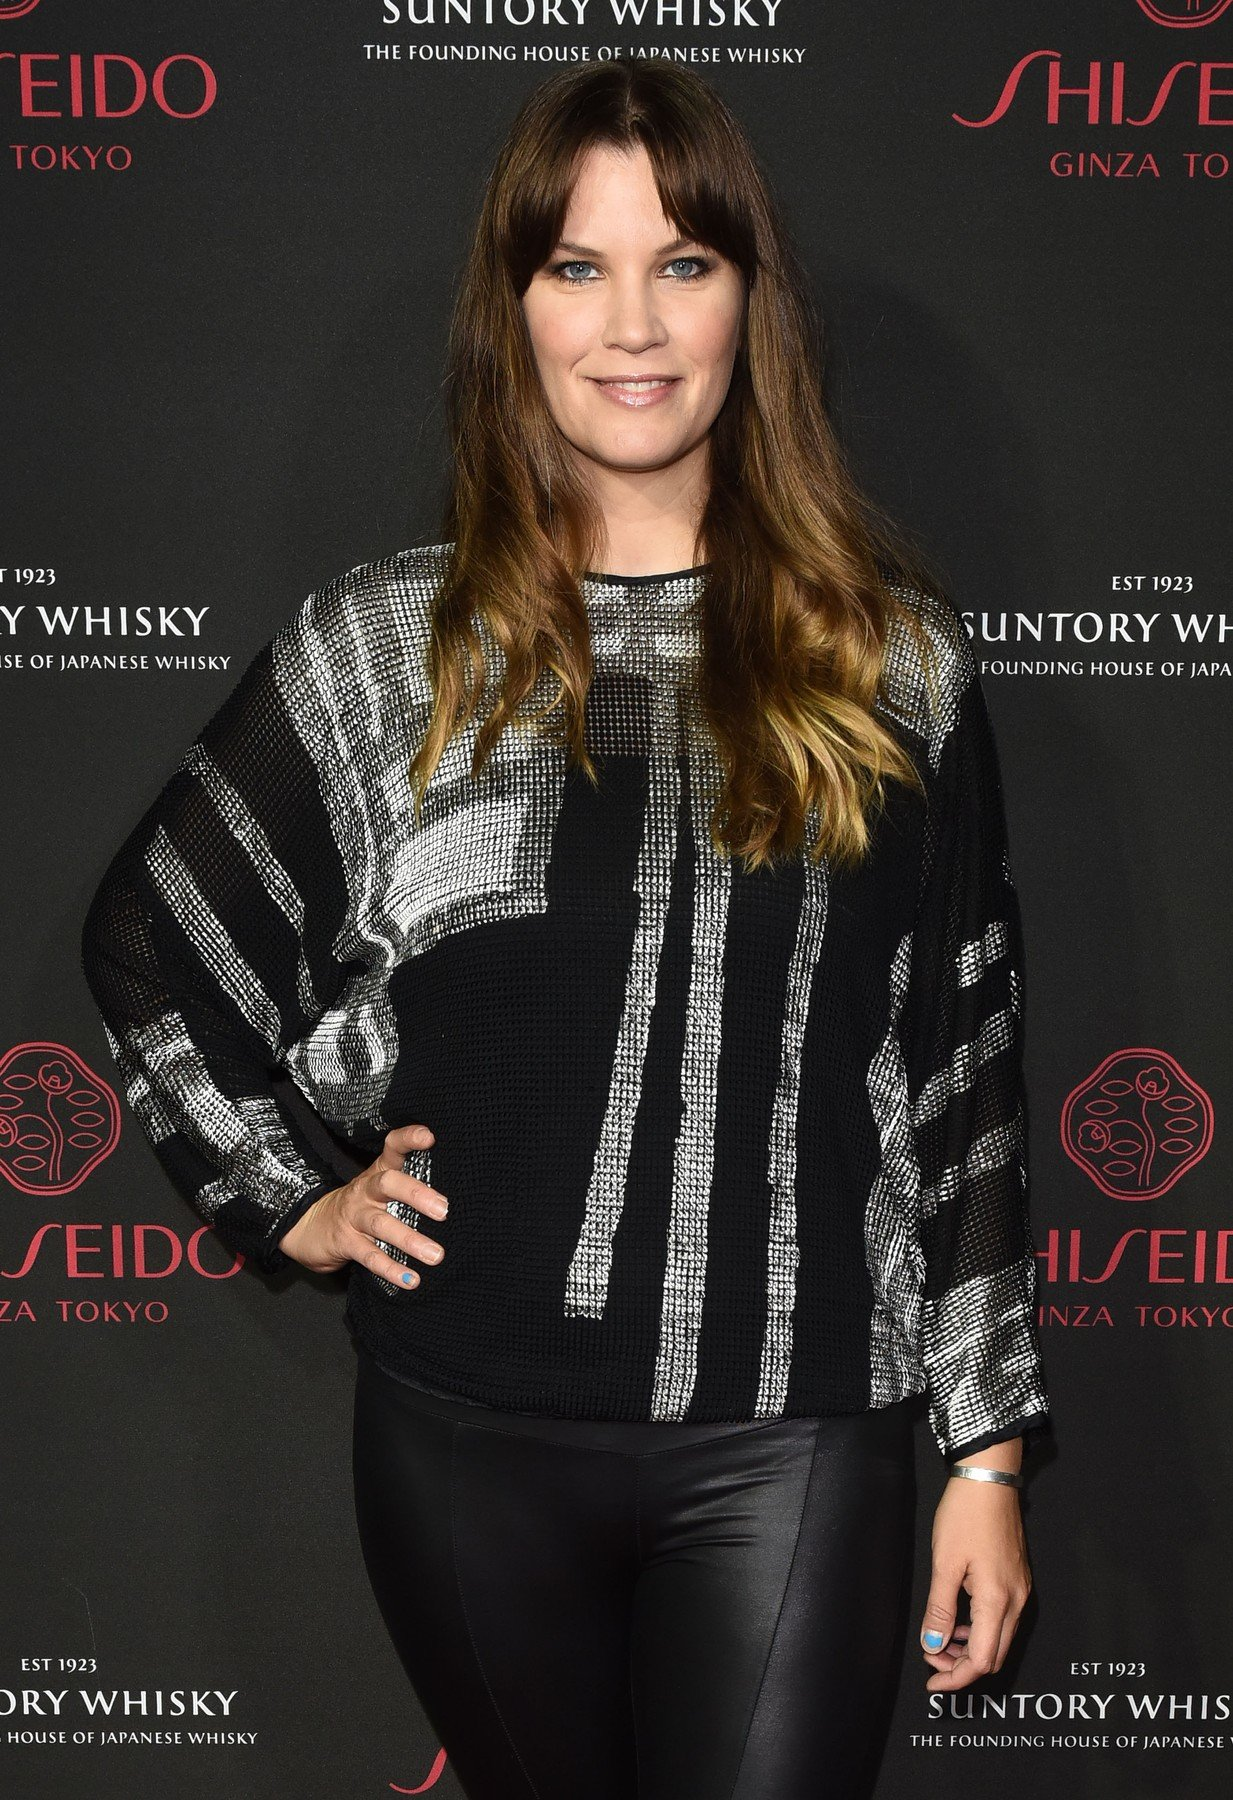 -Hollywood, CA - 09/25/2018 Shiseido Makeup Launch Party -PICTURED: Frida Farrell -, Image: 388441545, License: Rights-managed, Restrictions: , Model Release: no, Credit line: Profimedia, INSTAR Images